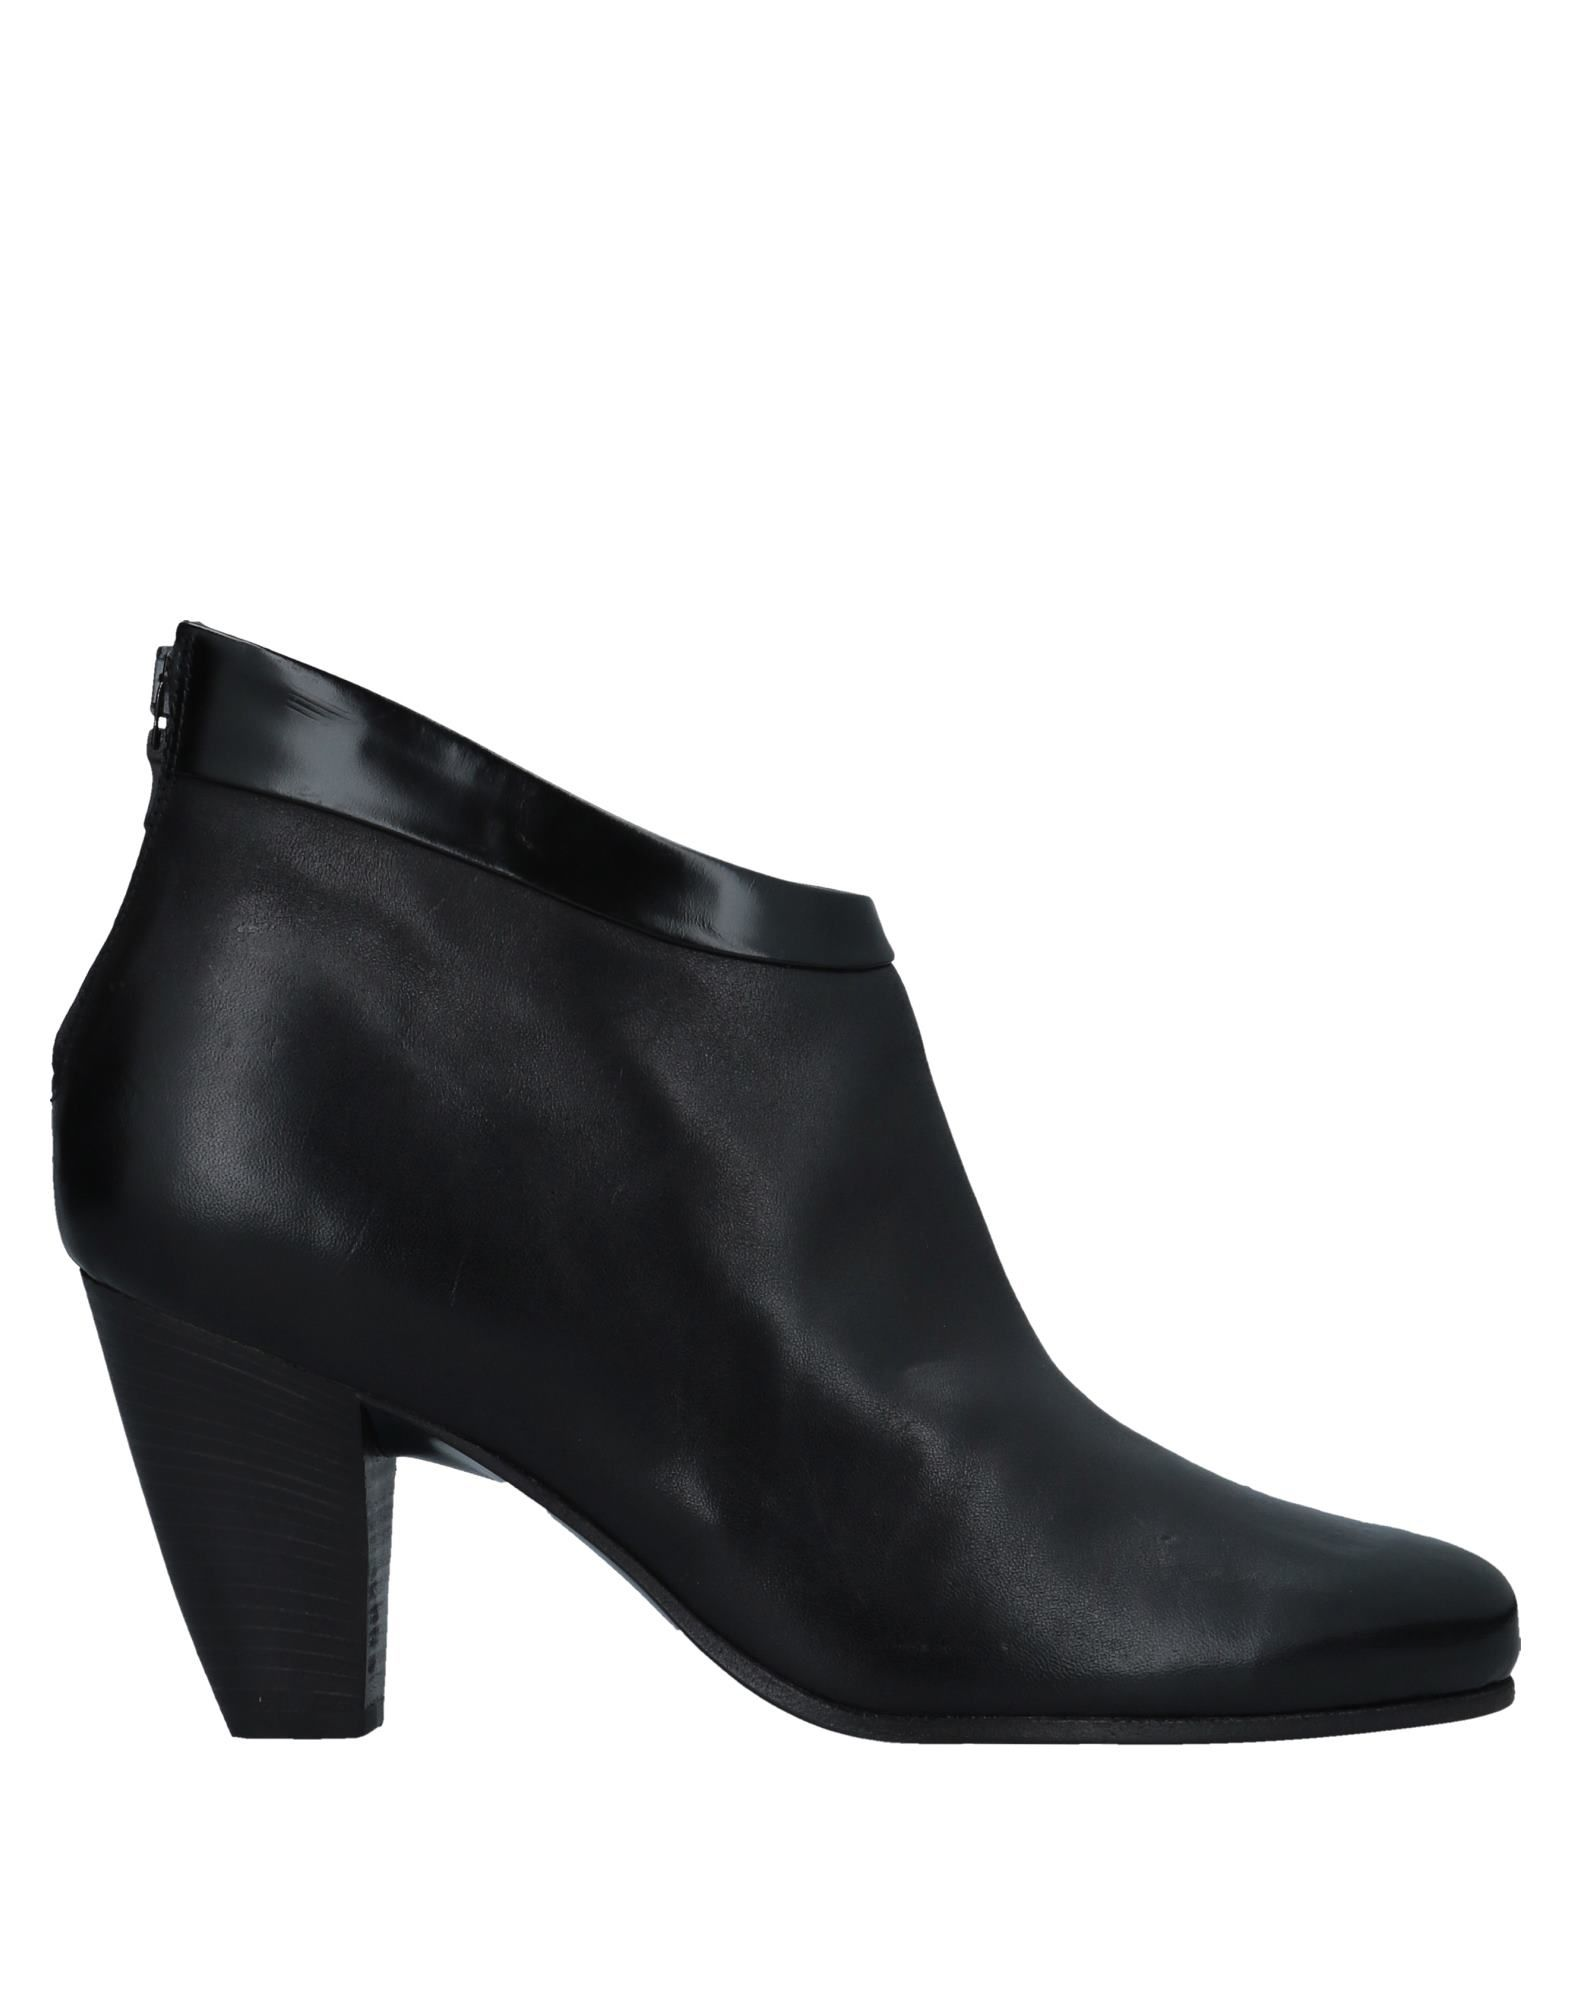 Bottine I.N.K. Shoes Femme - Bottines I.N.K. Shoes Noir Mode pas cher et belle